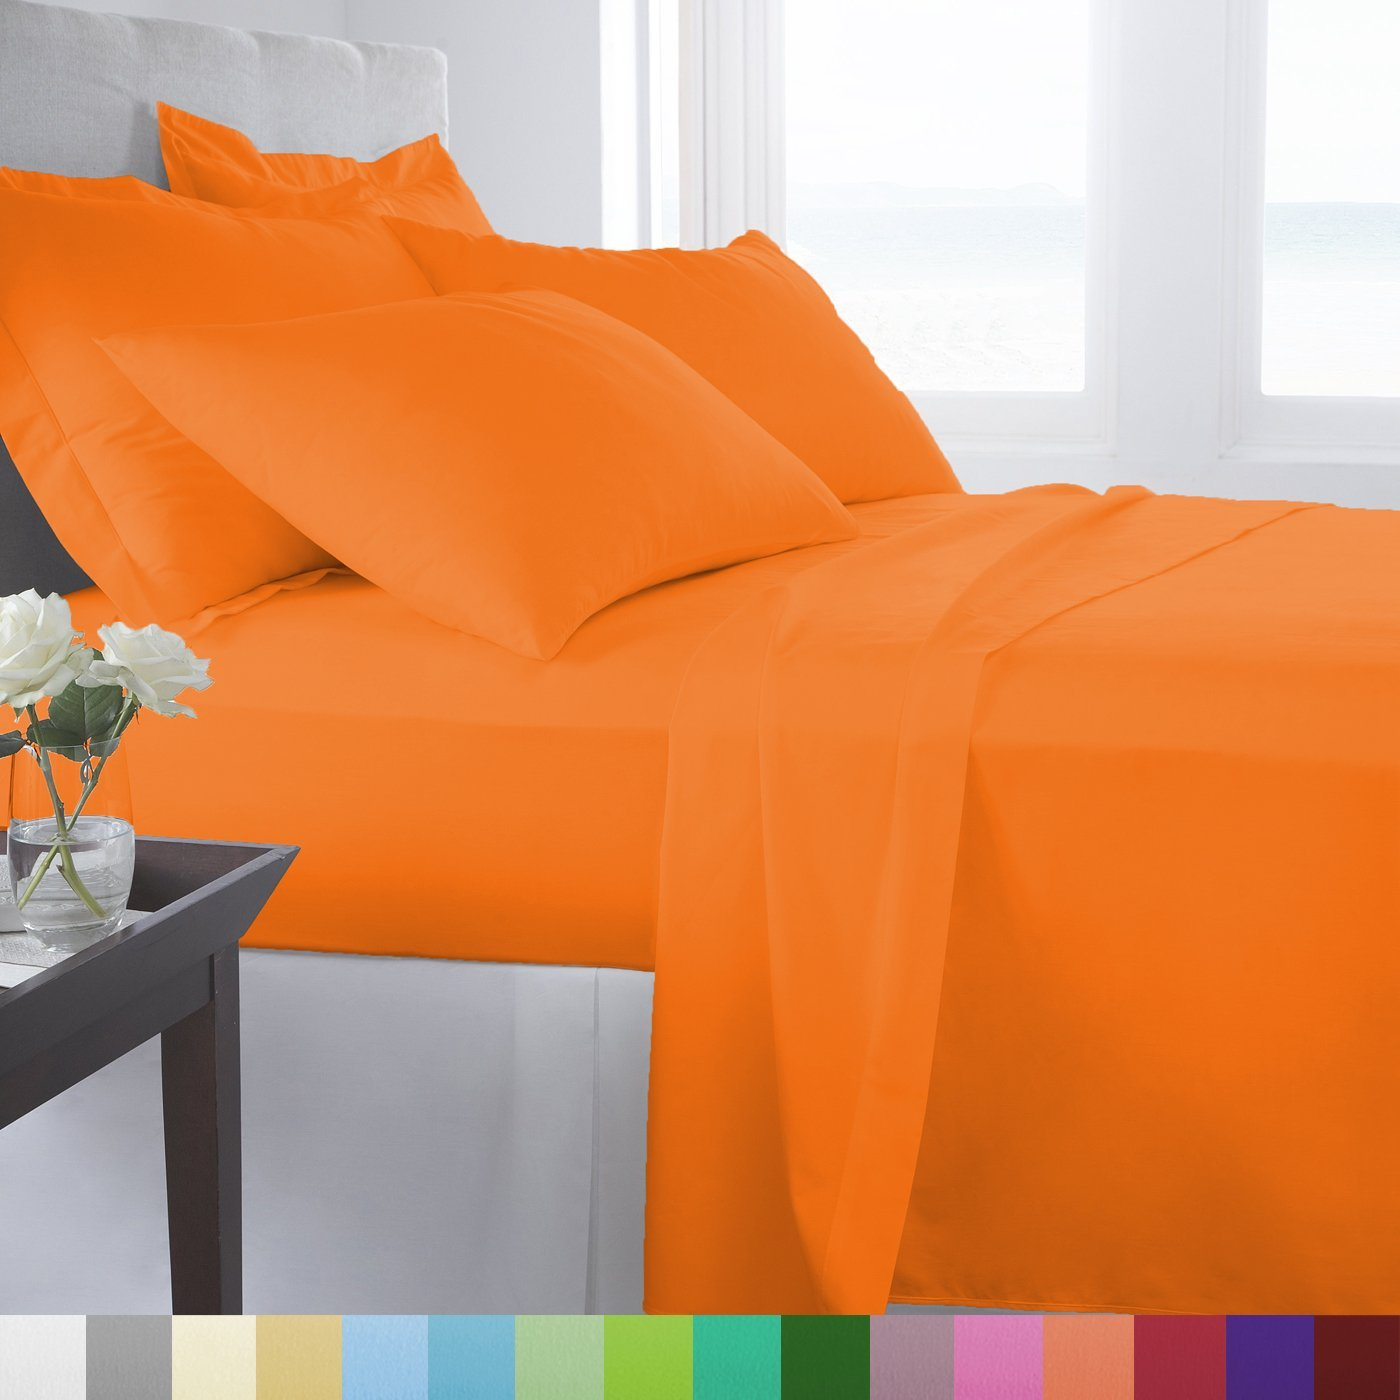 Supreme Super Soft 4 Piece Bed Sheet Set Deep Pocket Bedding - King Size Orange